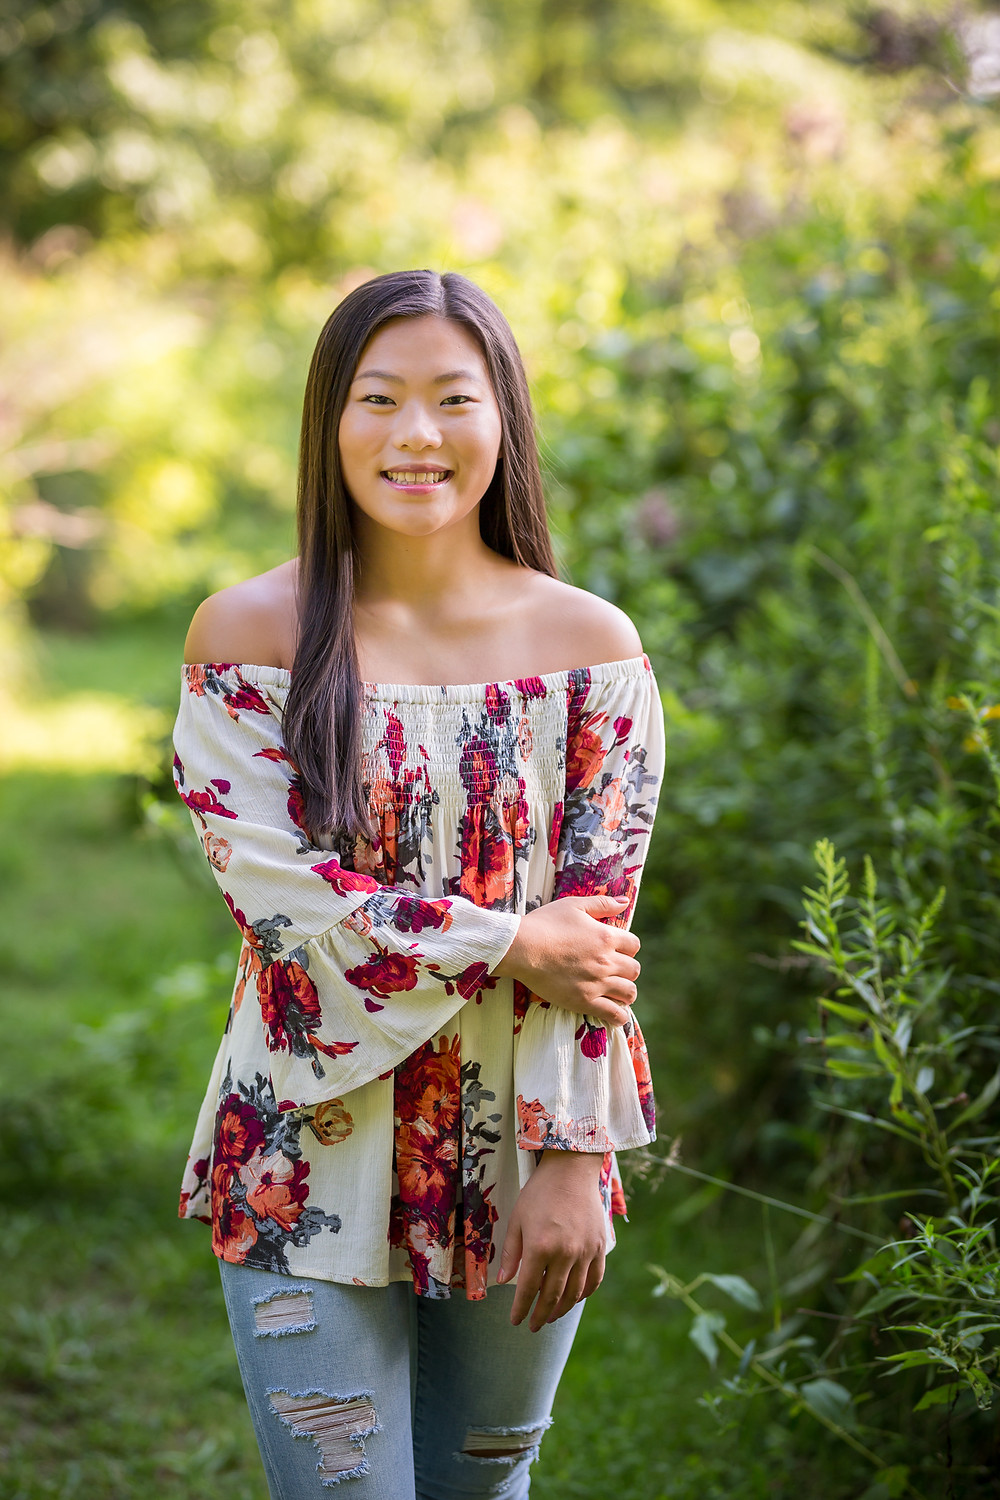 Senior girl smiles at camera wearing jeans and floral shirt during professional portrait session at Inniswood Metro Garden in Westerville Ohio standing near field